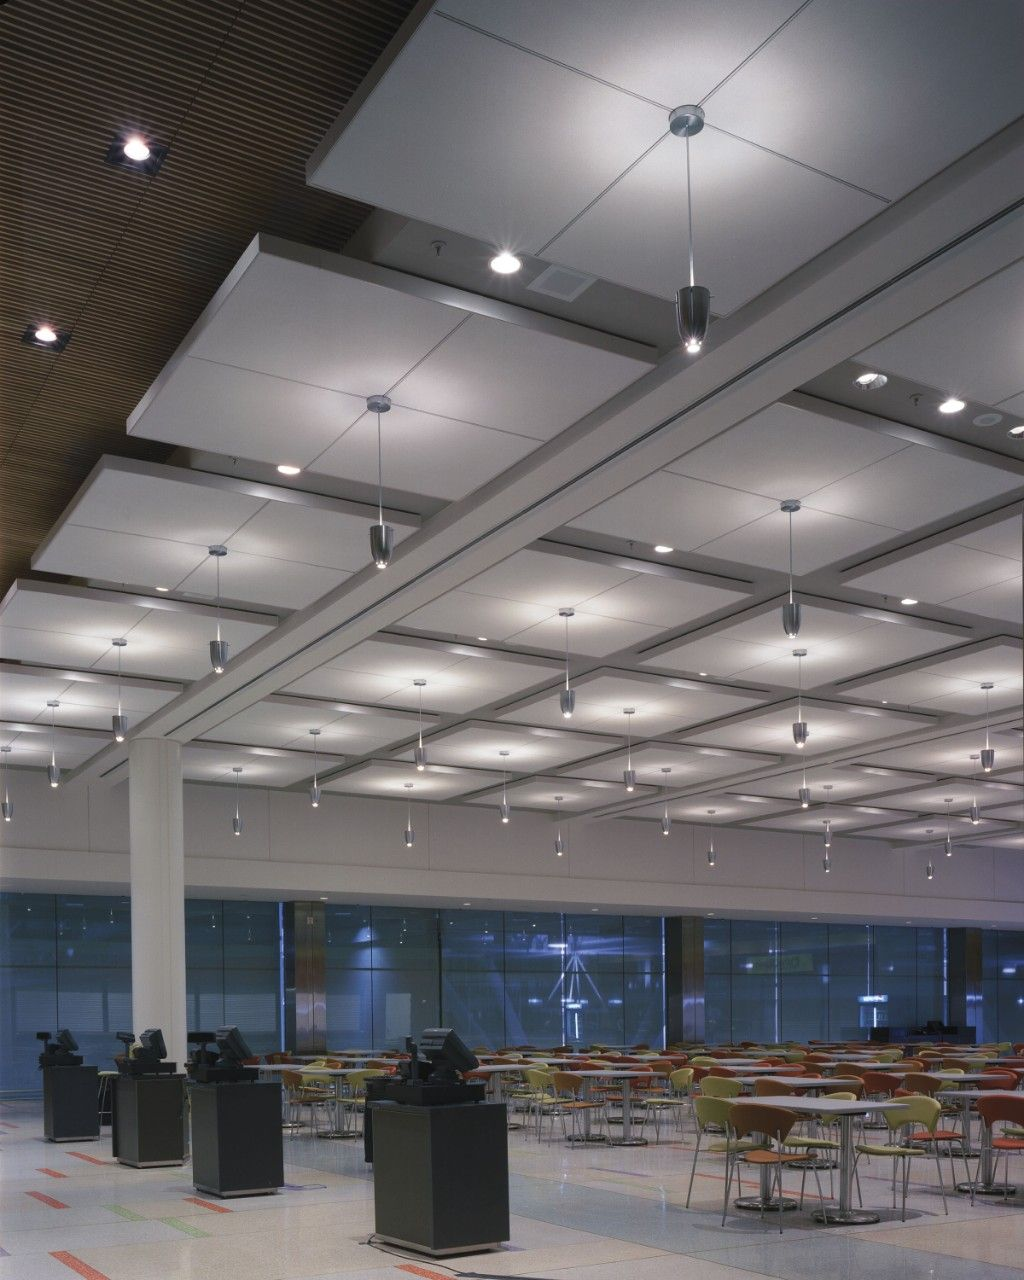 Paneles acsticos para cielo raso tablones y tamaos grandes usg usg acoustical ceiling panels and decorative ceiling tiles are available in a multitude of materials textures sizes colors and applications dailygadgetfo Images